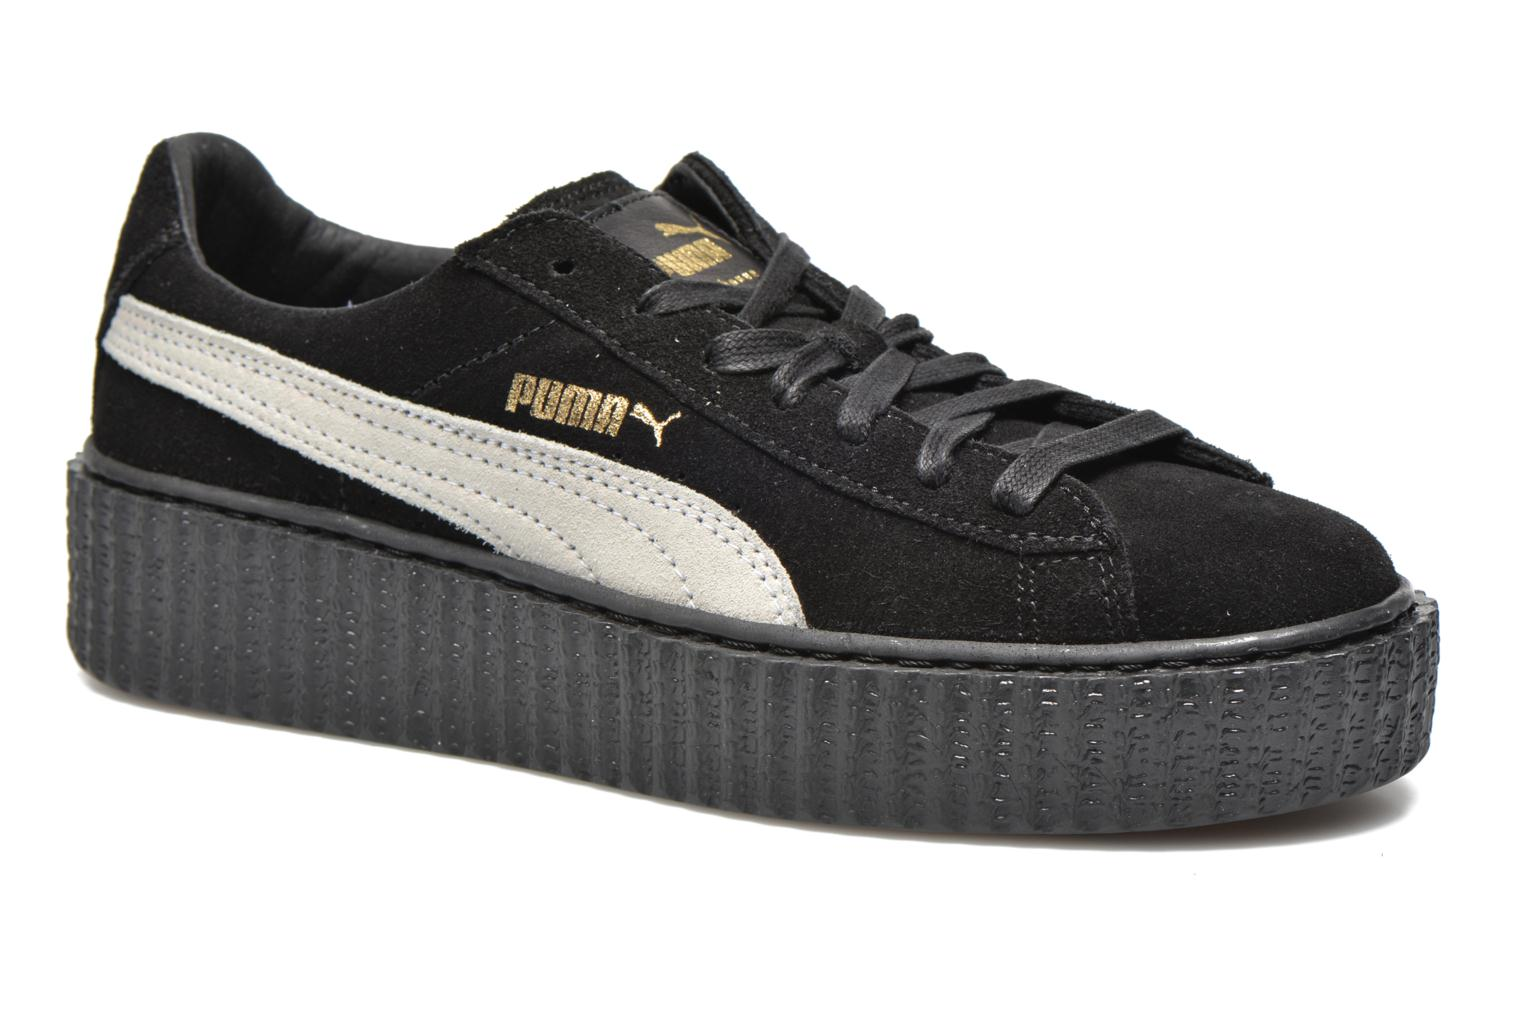 puma creepers absatzhöhe